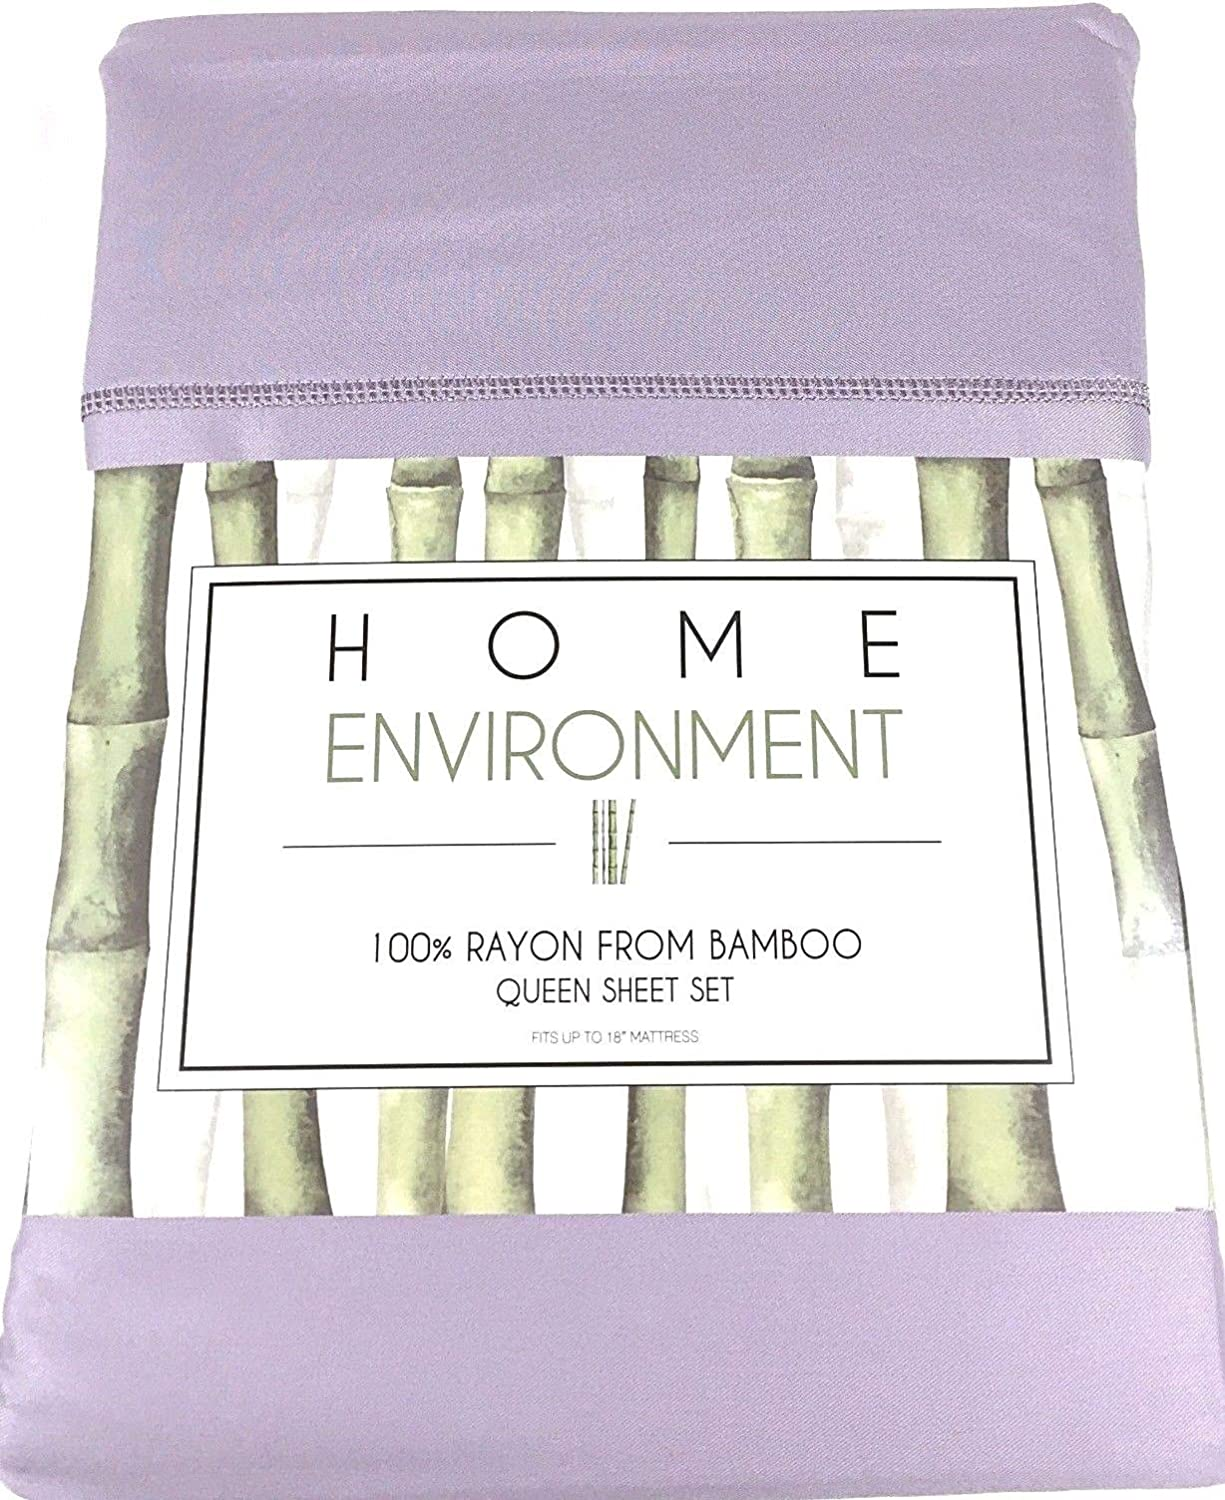 Home Environment Lavender Lilac Queen Sheet Set 100% Rayon from Bamboo - Antibacterial Eco-Friendly